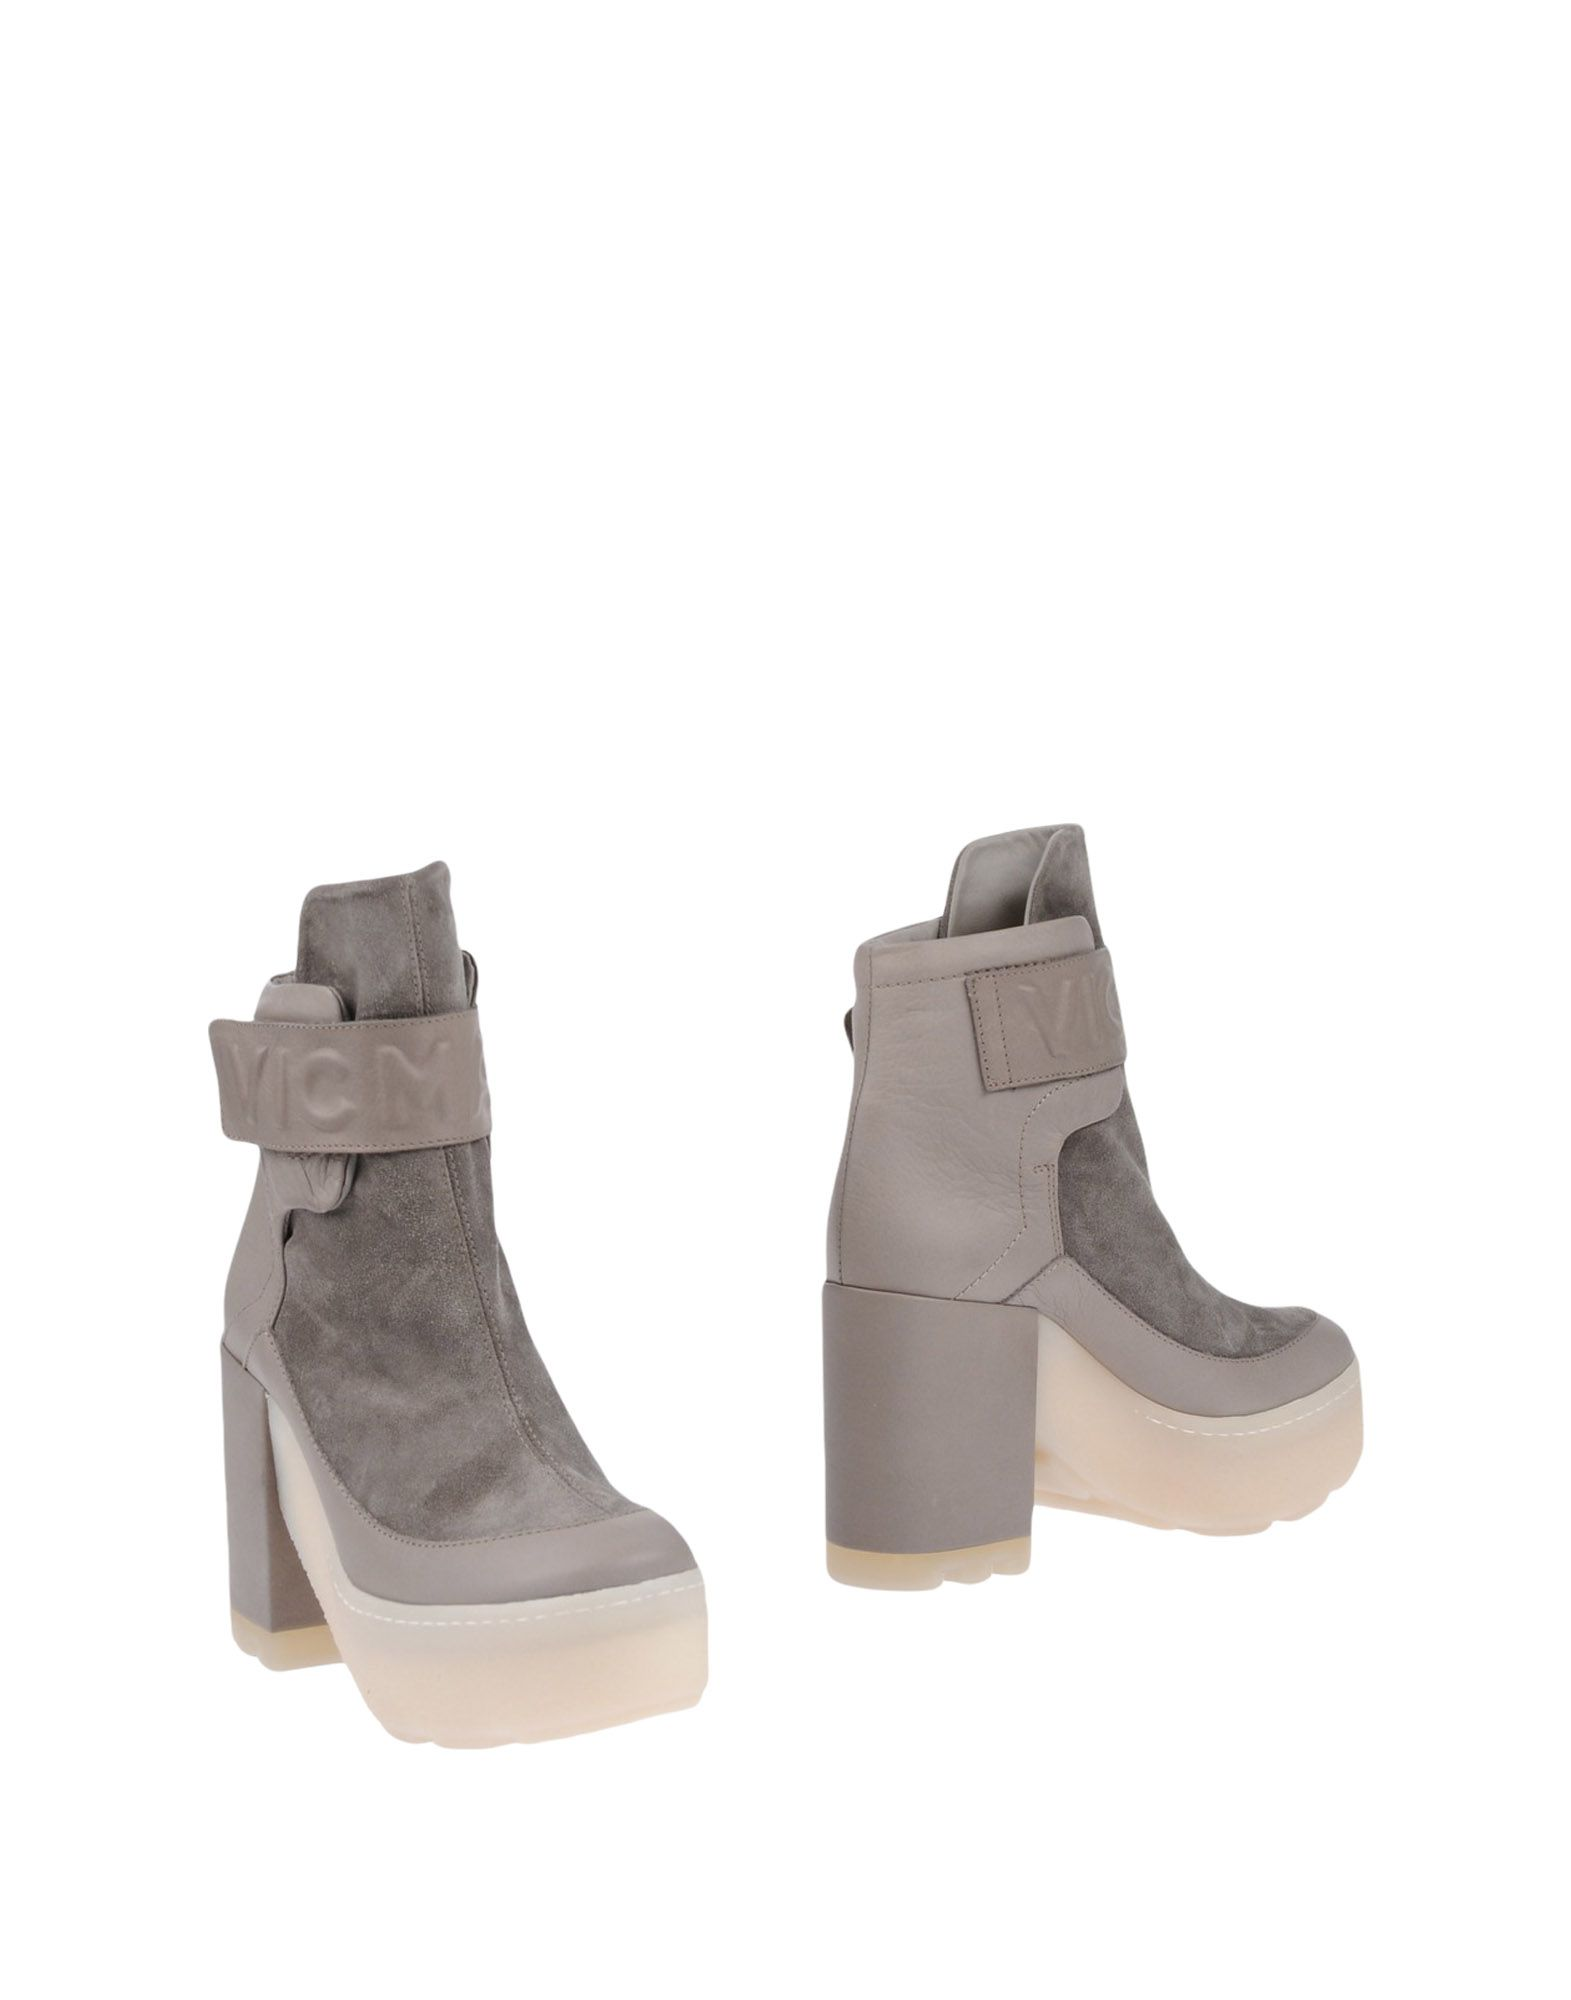 Vic Matiē Ankle Boot - Women Vic Matiē Ankle Boots - online on  Canada - Boots 11457492PI ee5e3d